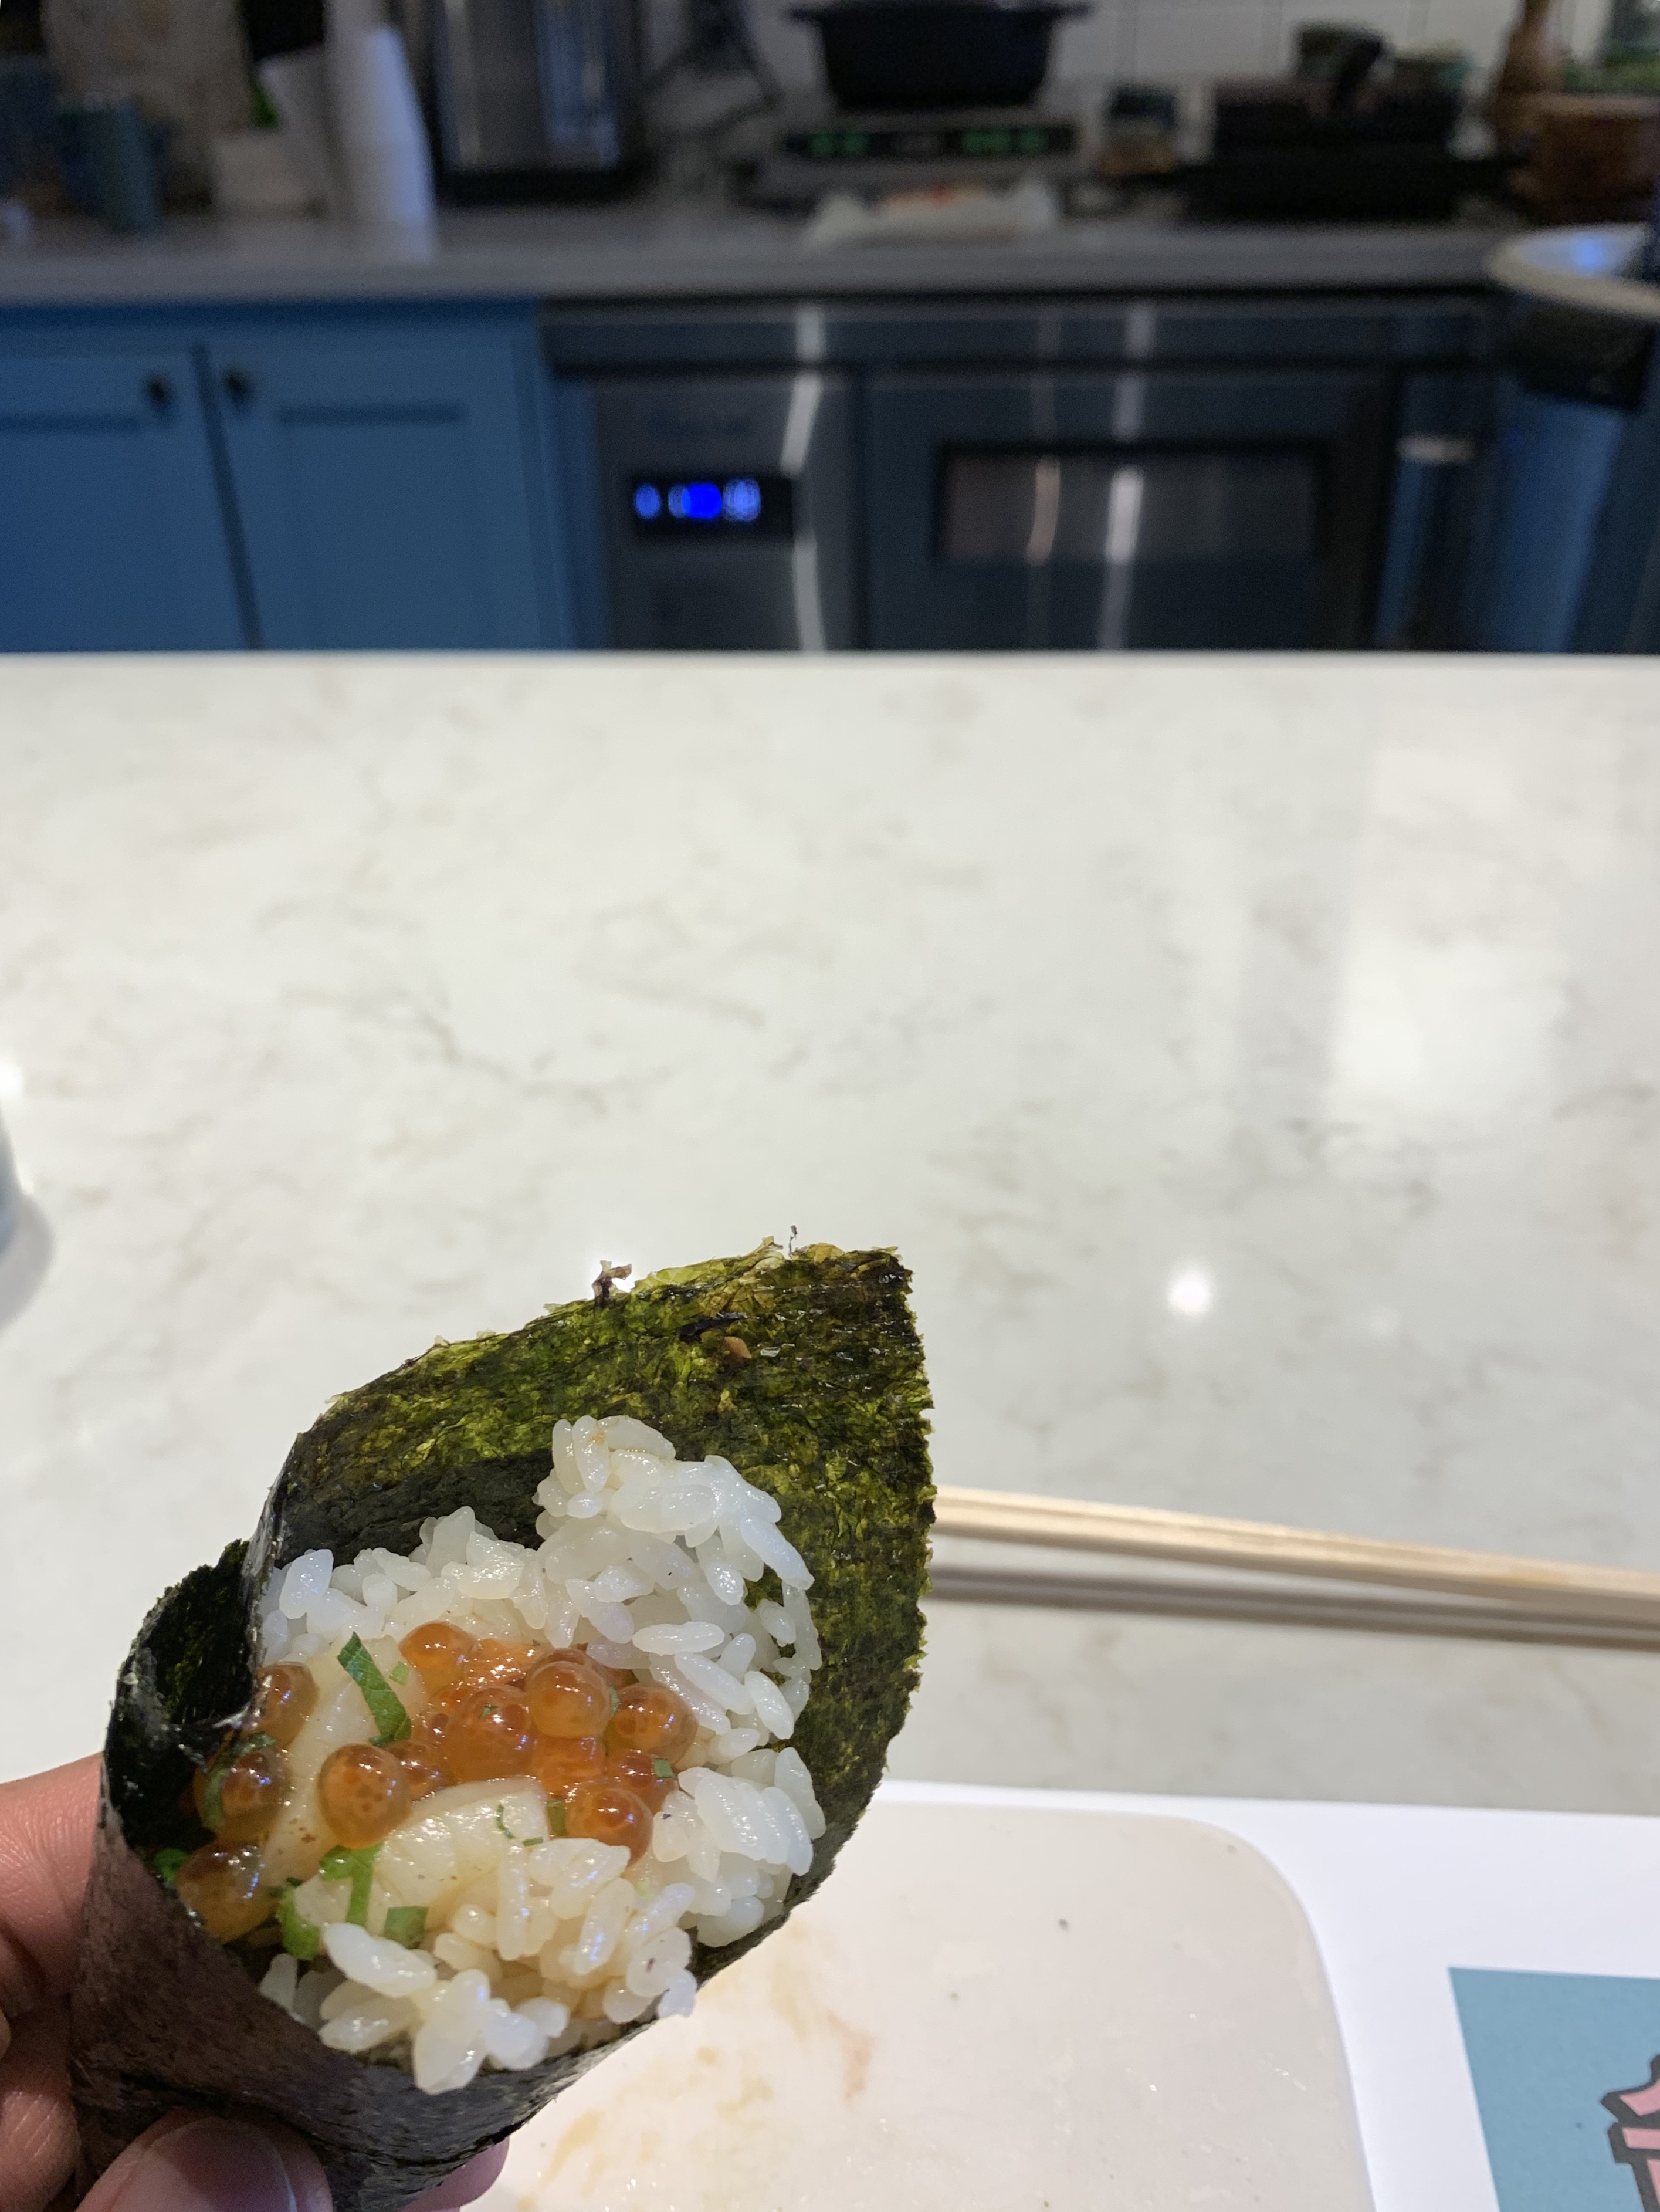 Seared scallops with salmon roe hand roll. (Image: Frank Guanco)